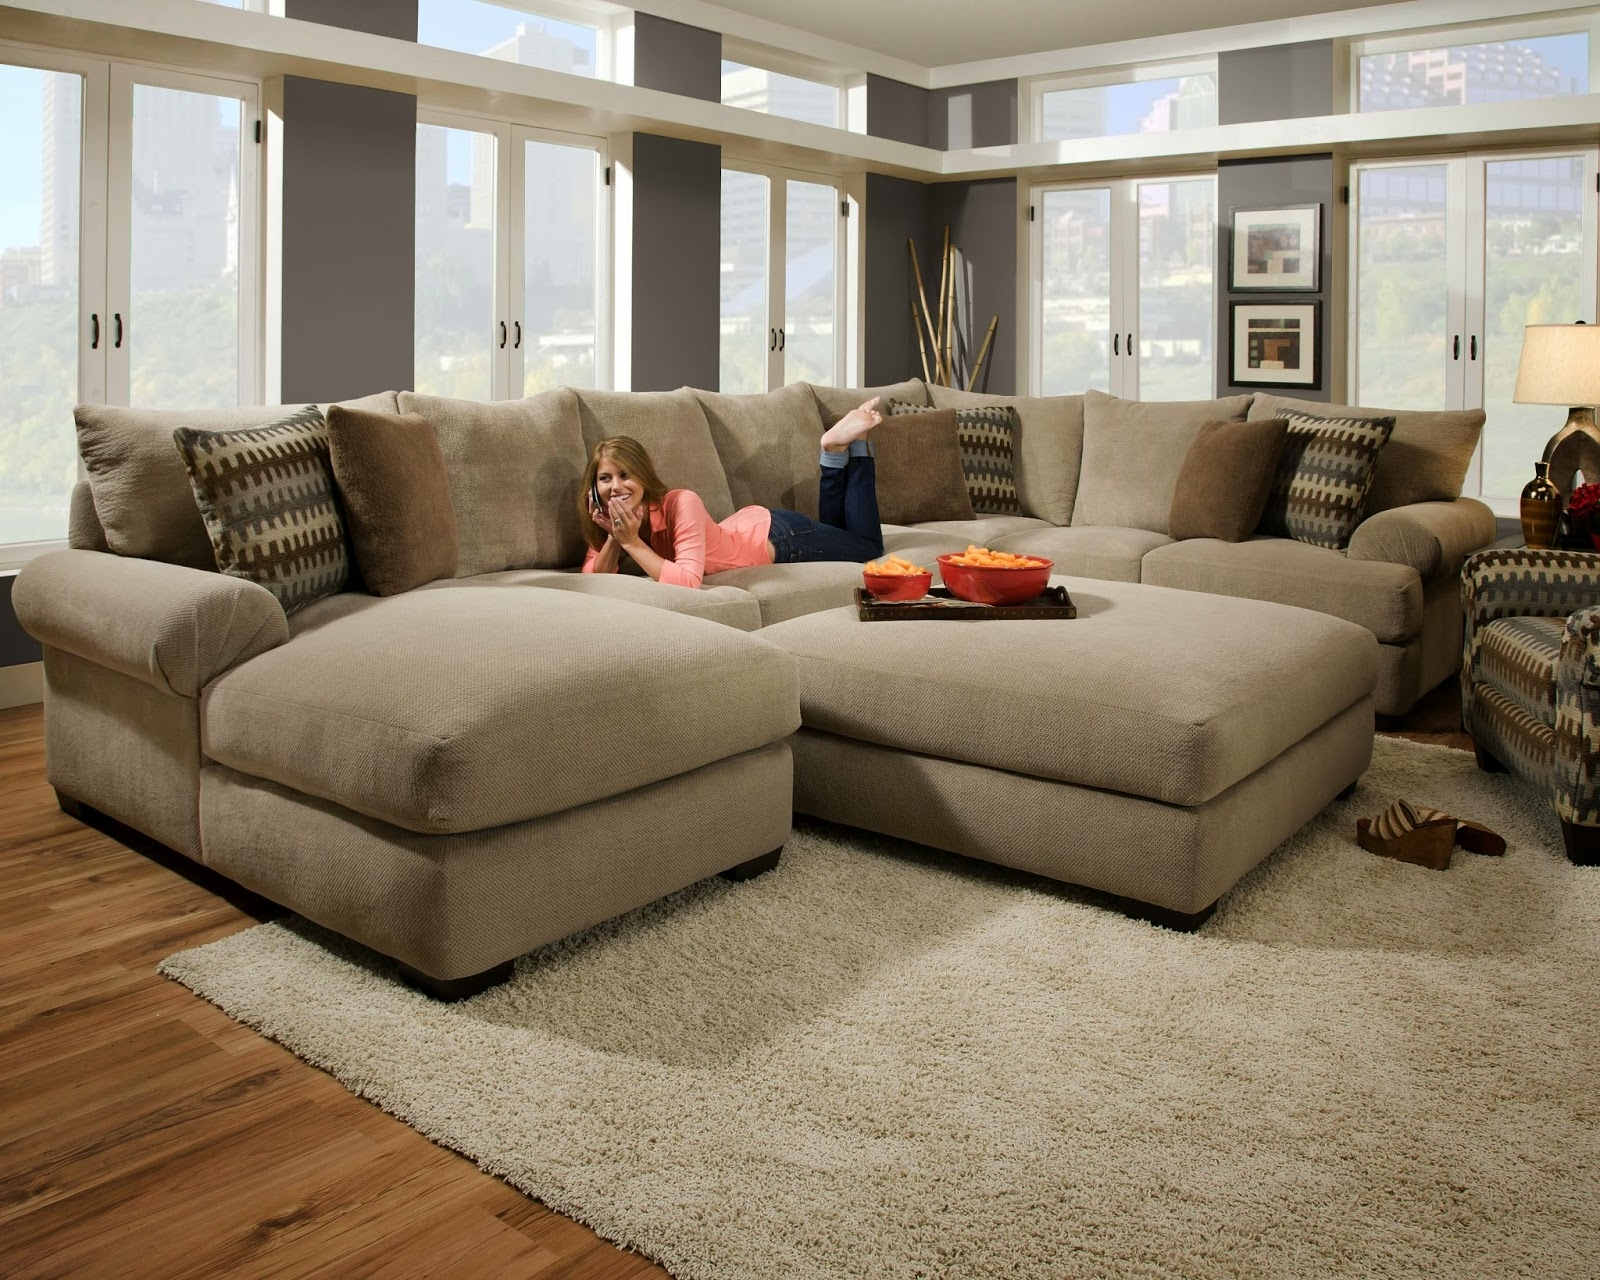 Microfiber Sectional Sofa With Ottoman - Ideas on Foter